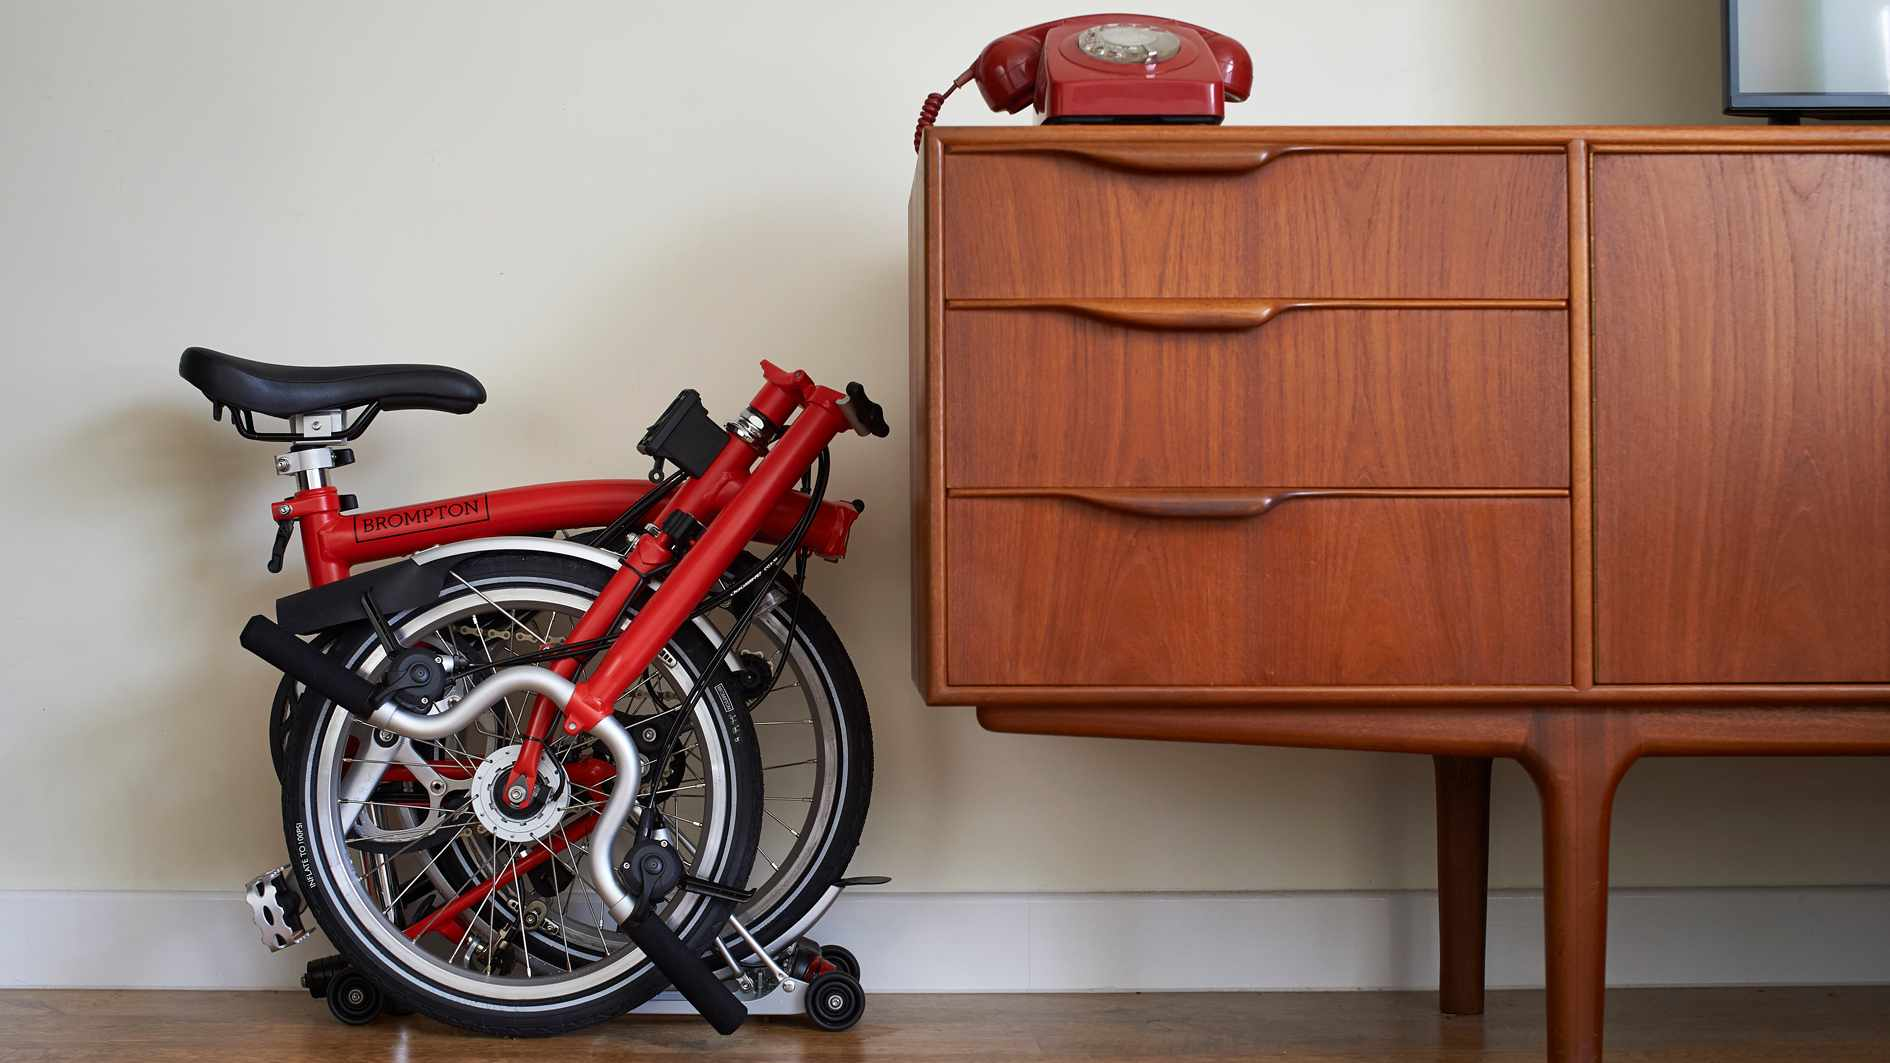 Brompton's folders will be available in Halfords, Tredz and Cycle Republic stores from November